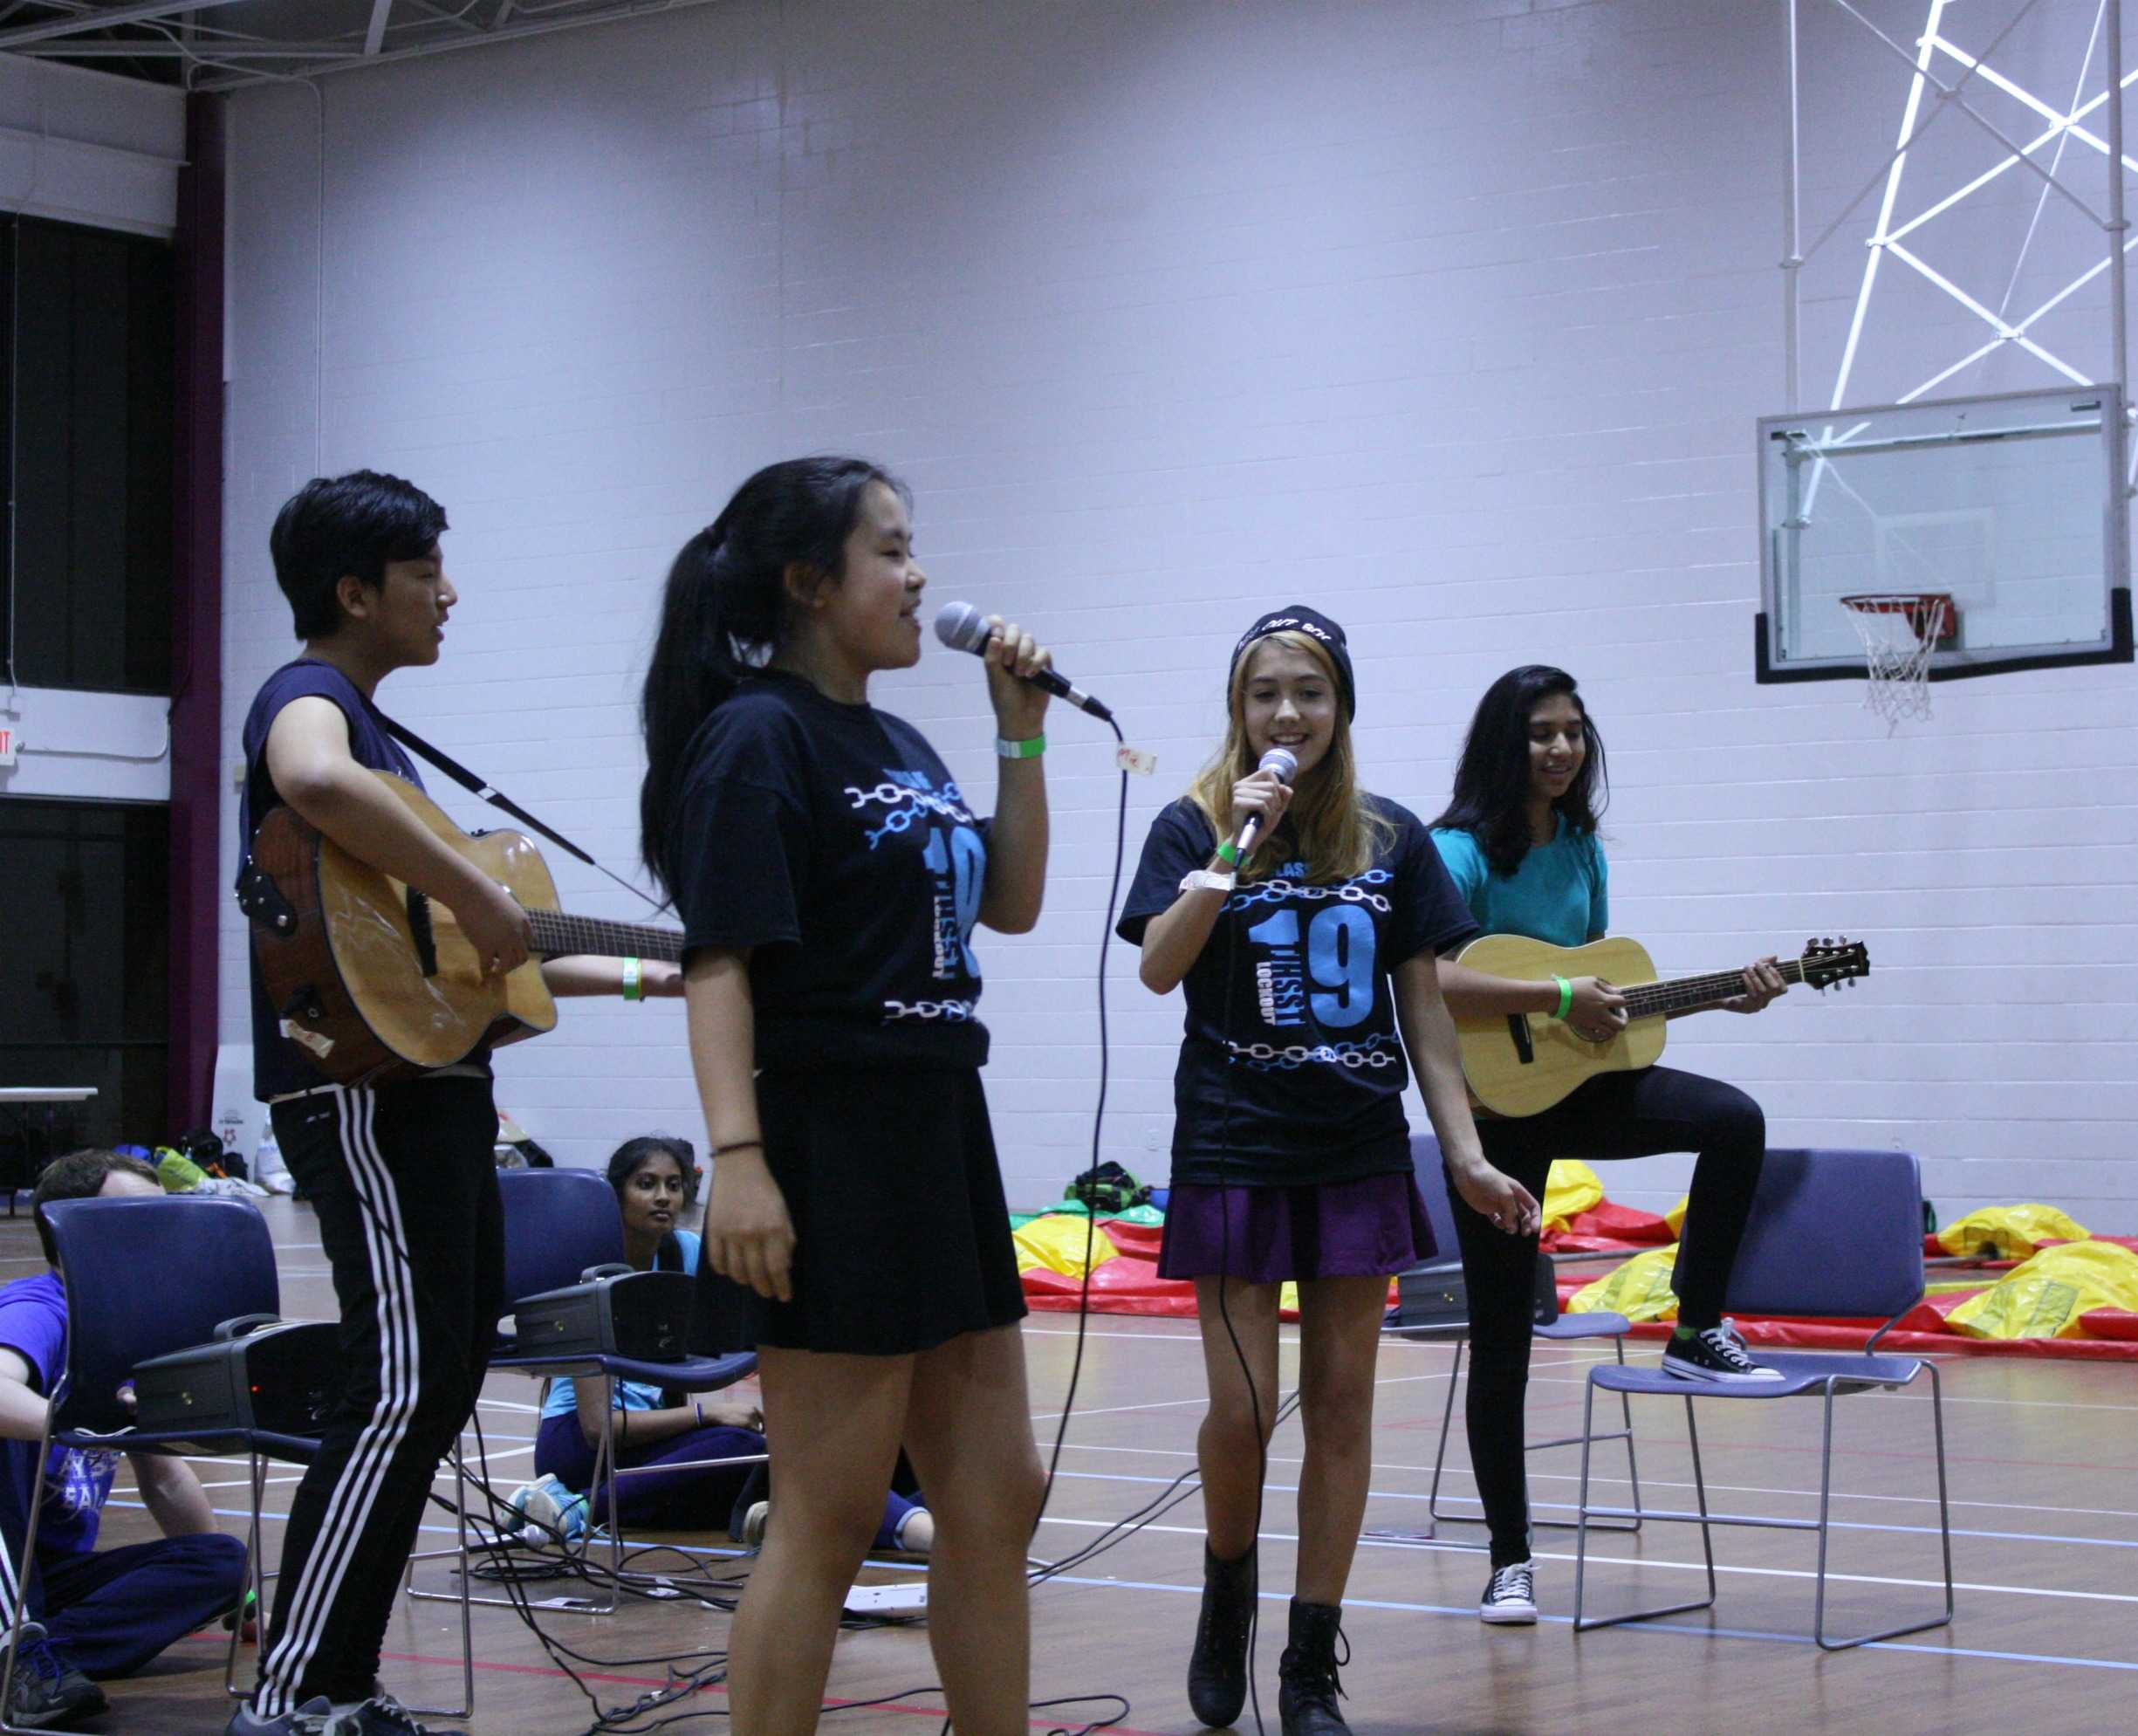 Will+Cho%2C+Reena+Medavarapu%2C+Sophia+Wang+and+Julia+Martinez+sing+Let%27s+Go+Crazy+by+One+Direction.